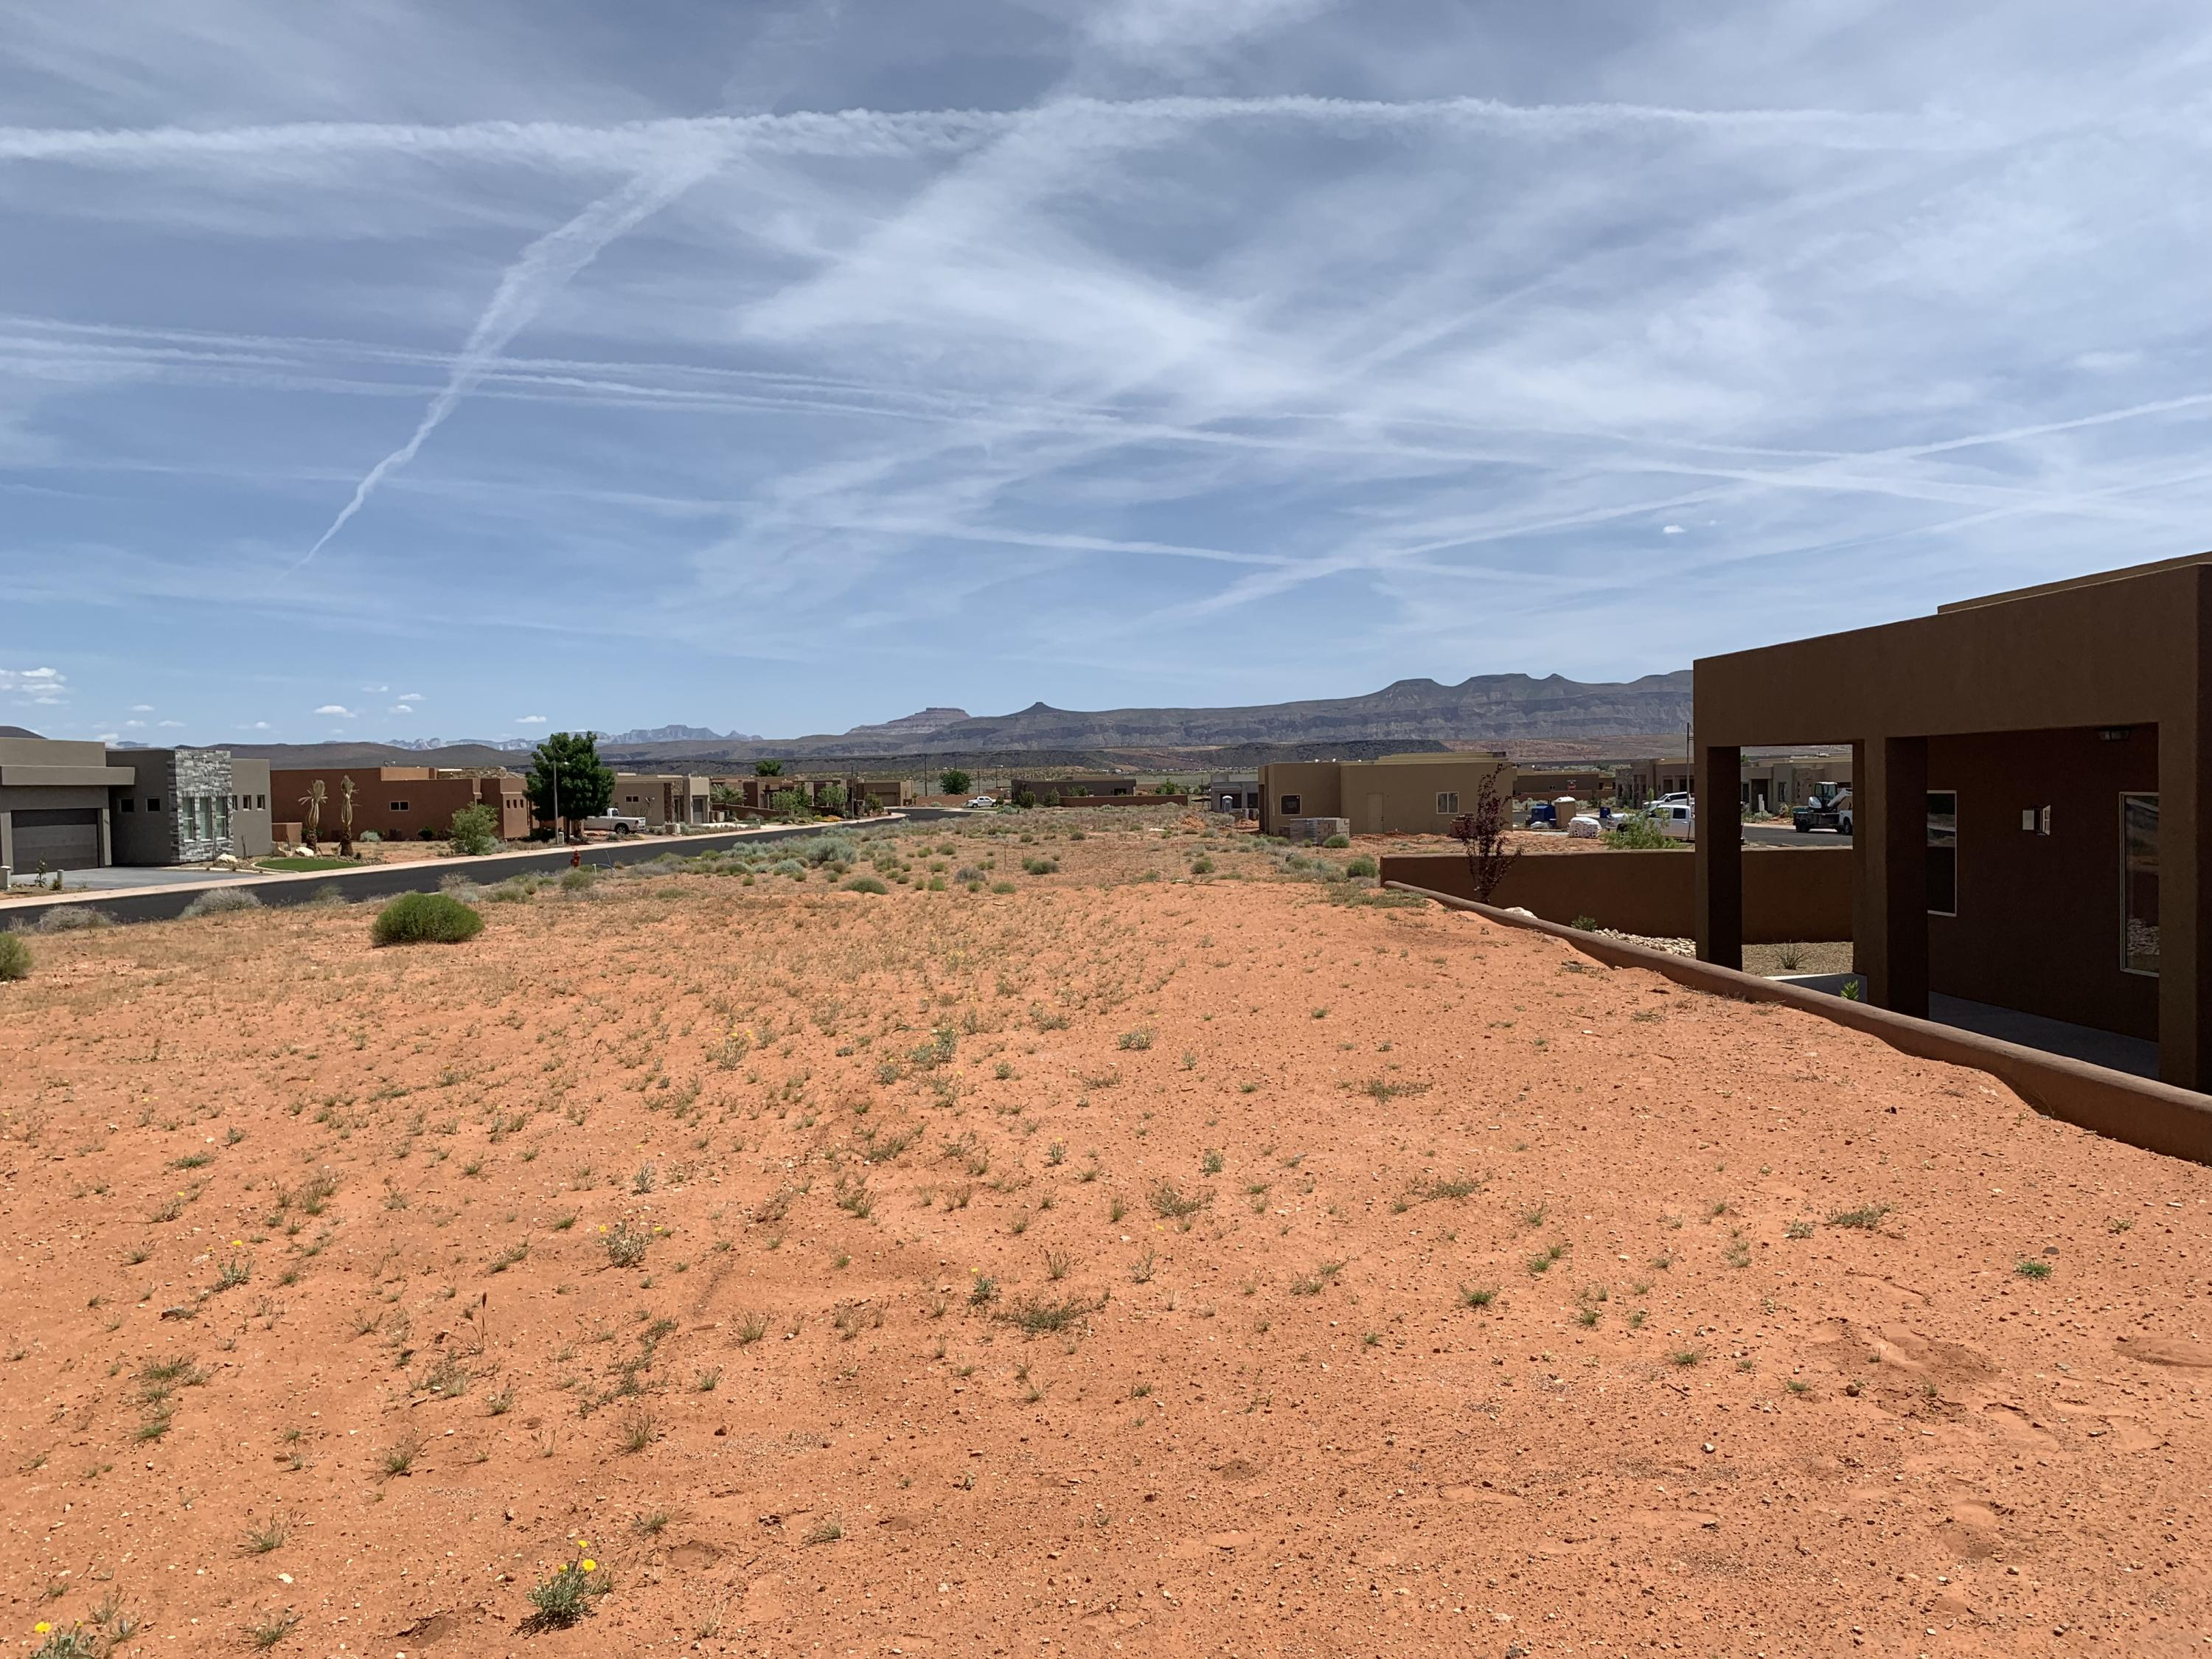 Water fee is PAID on this beautiful elevated homesite. Saving the new owner nearly $10k!The Dunes at Sand Hollow Resort offers two community pools and discount golf at the amazing Sand Hollow Golf Club.  Located in the heart of Southern Utah\